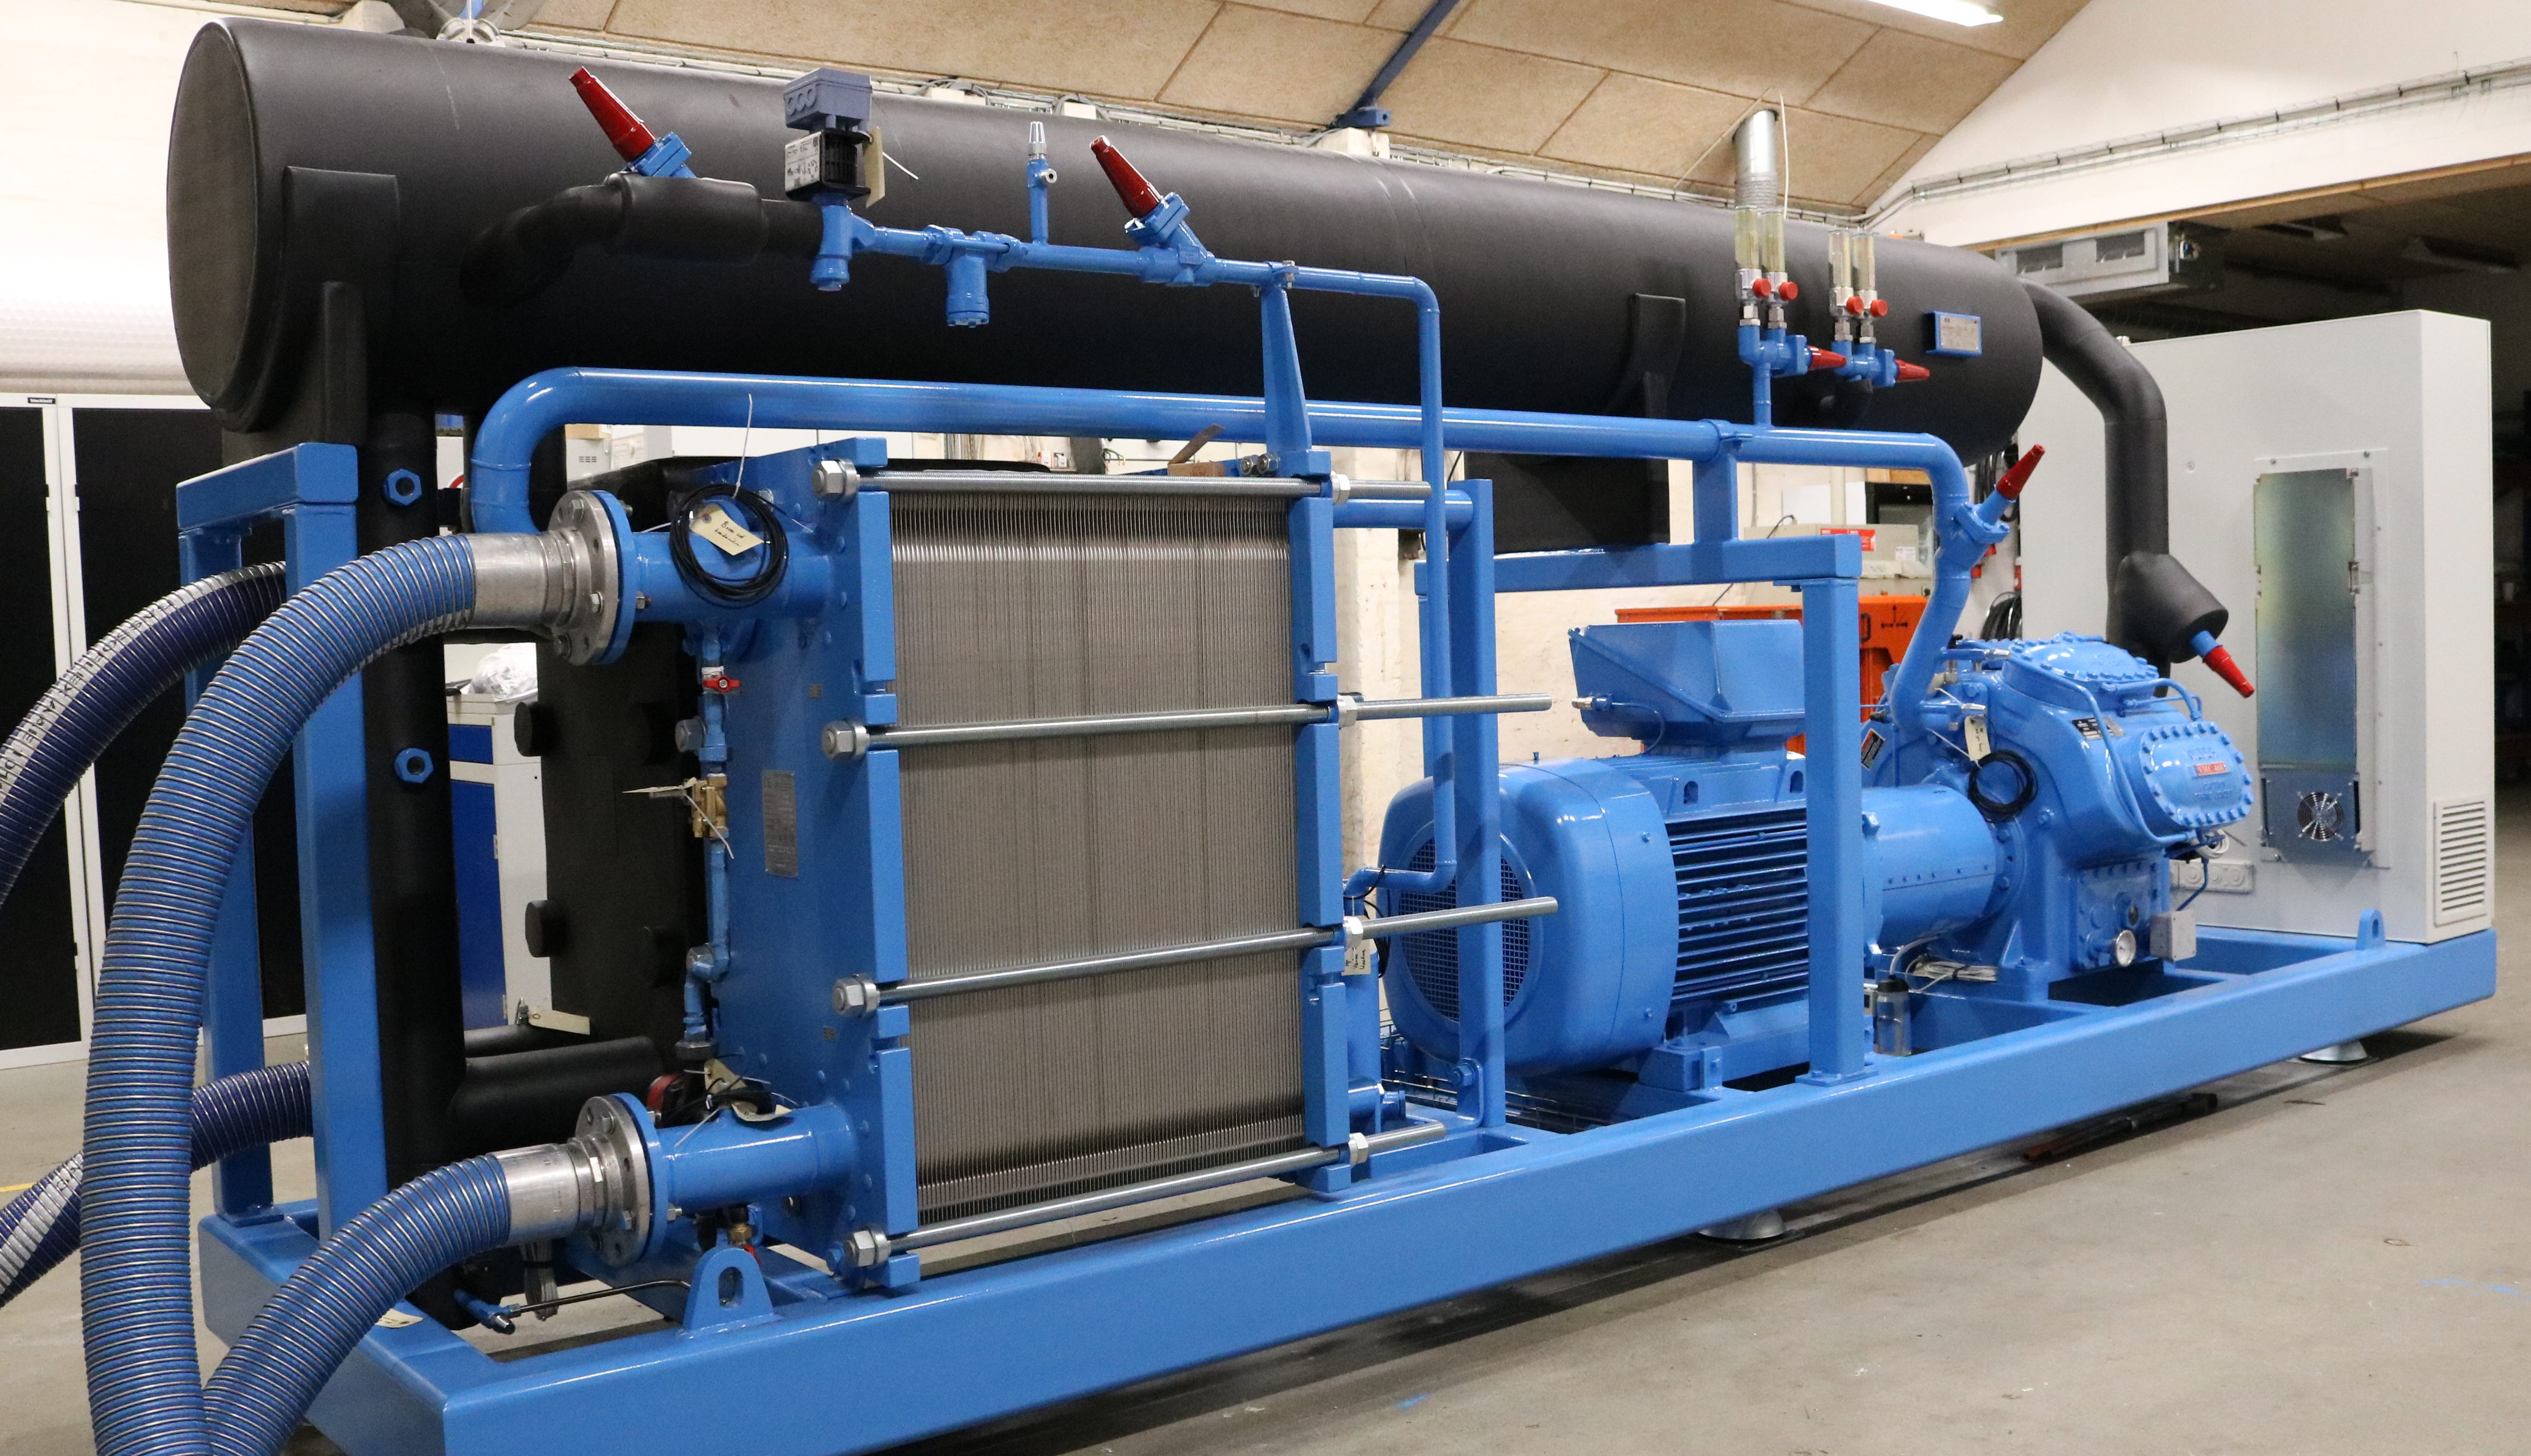 Water cooled ammonia chiller with black evaporator lagging for service, maintenance and repair